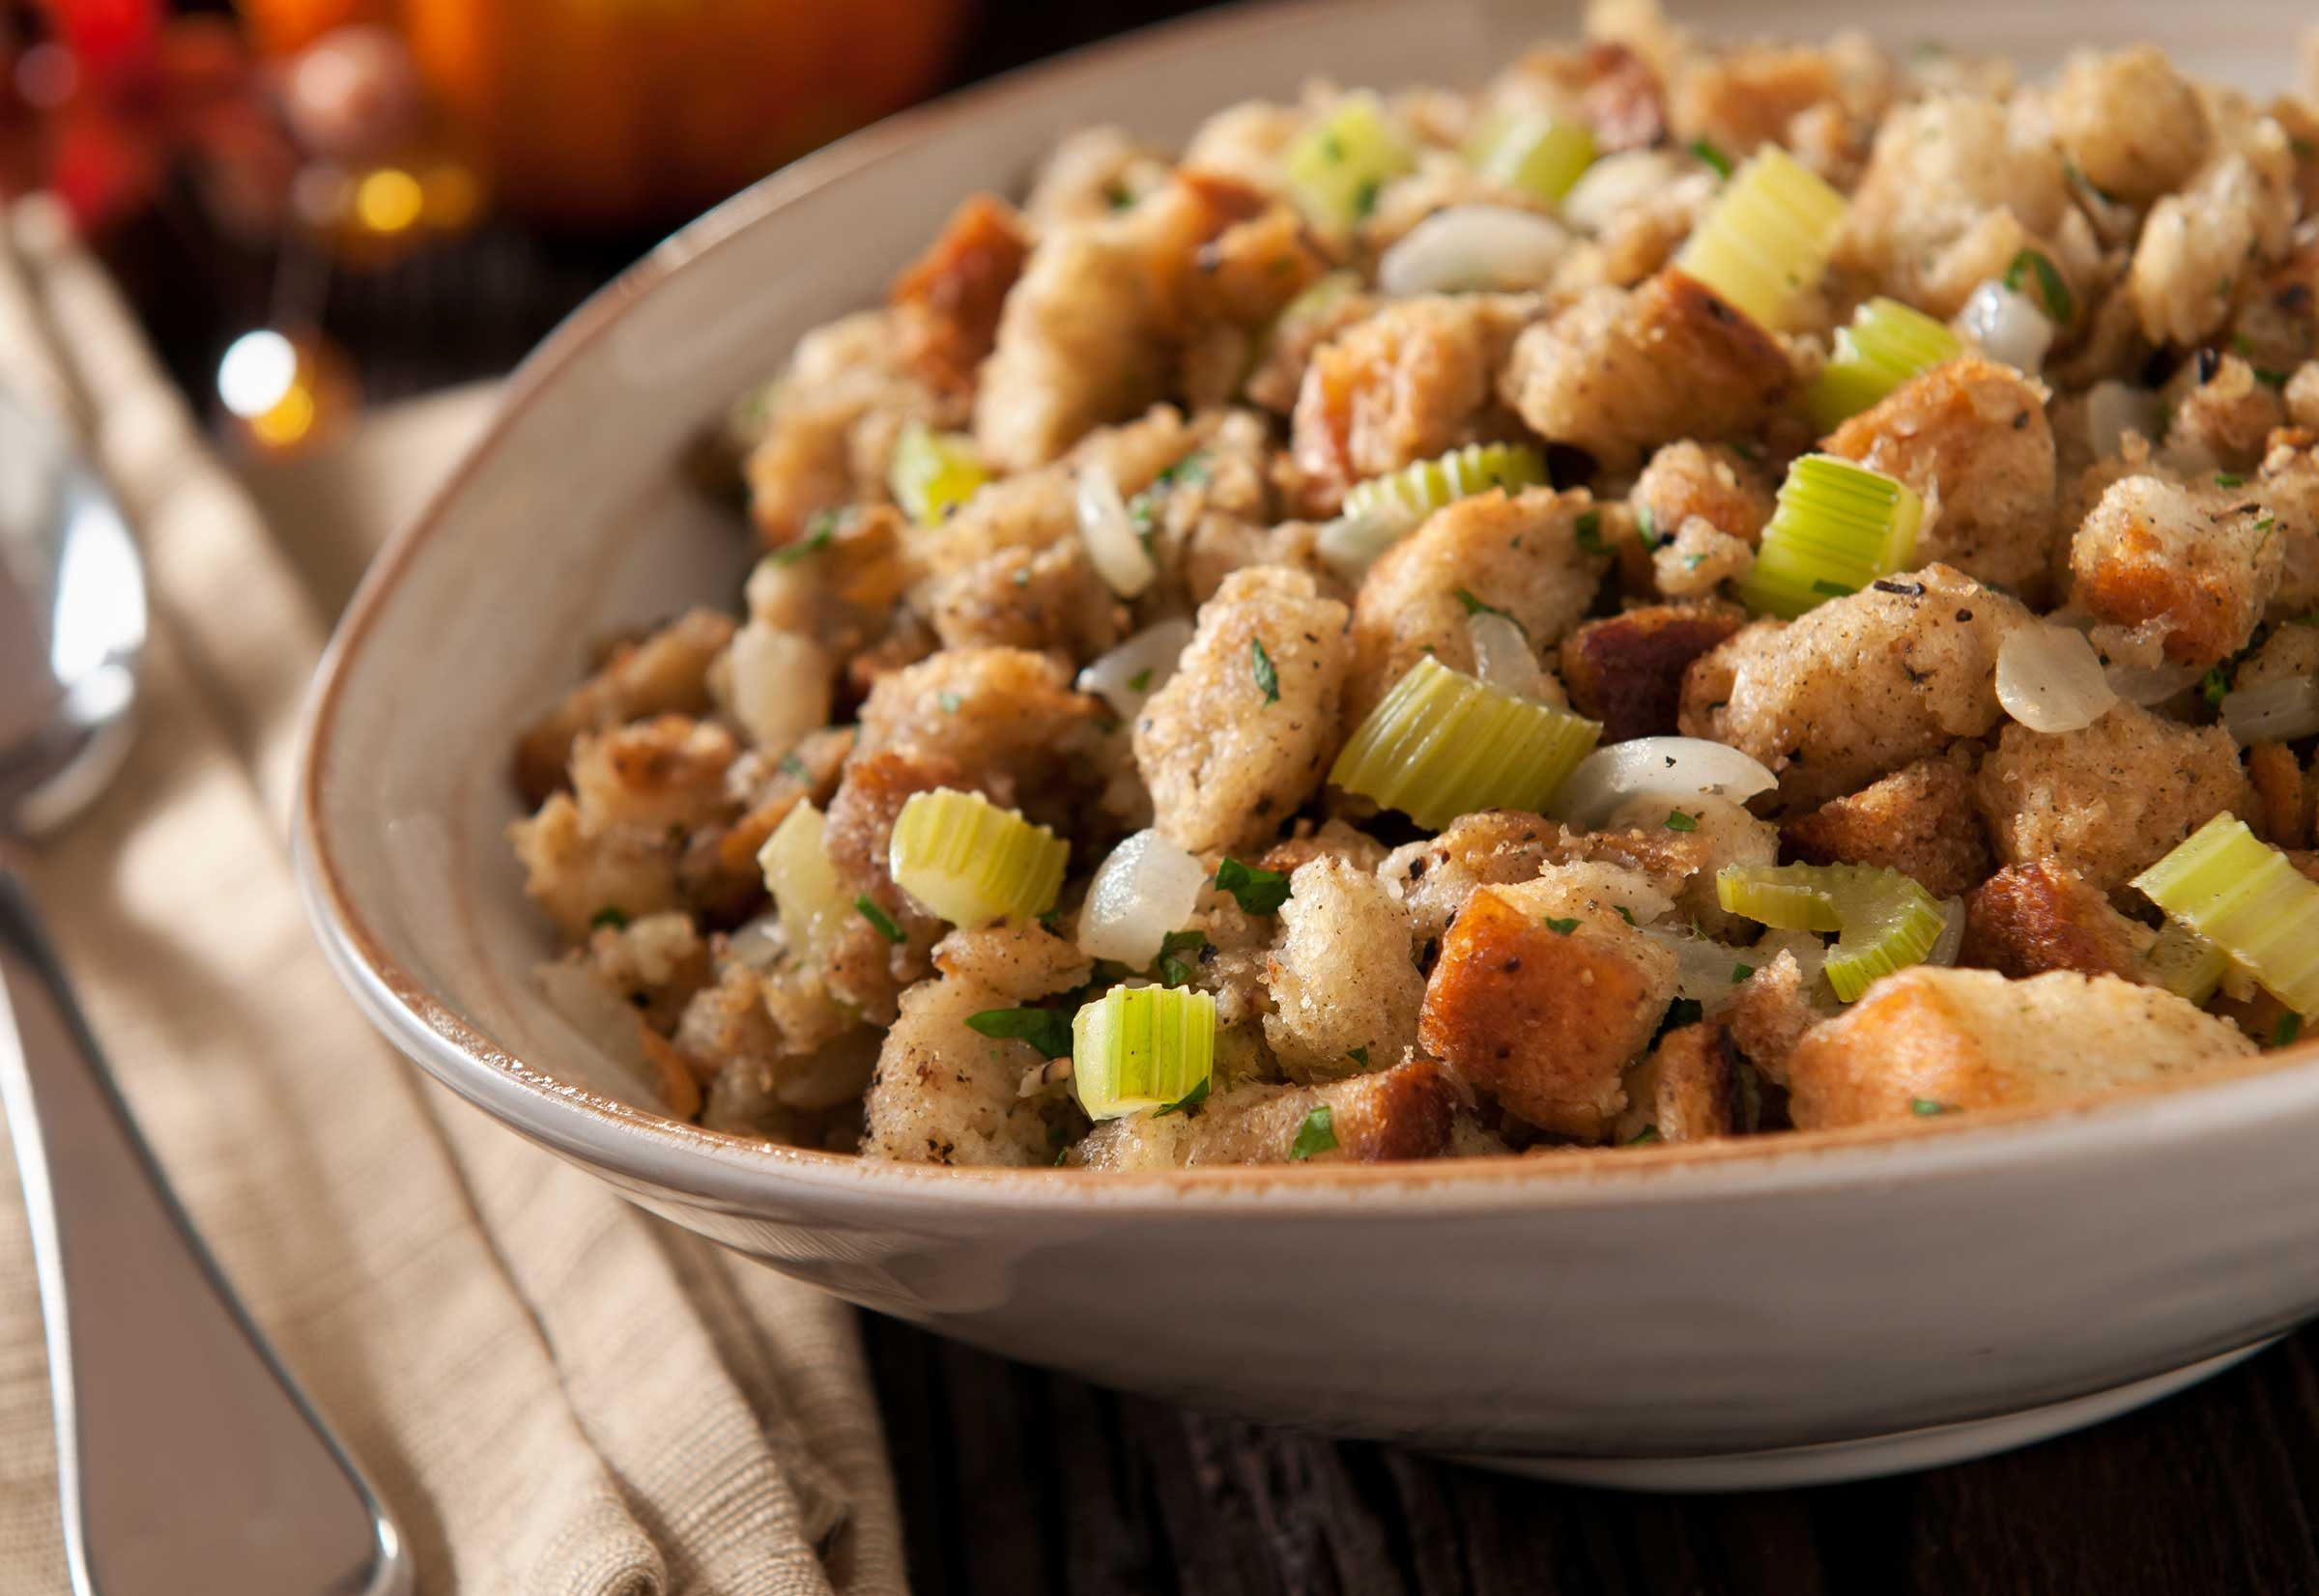 How do you fix dry stuffing?